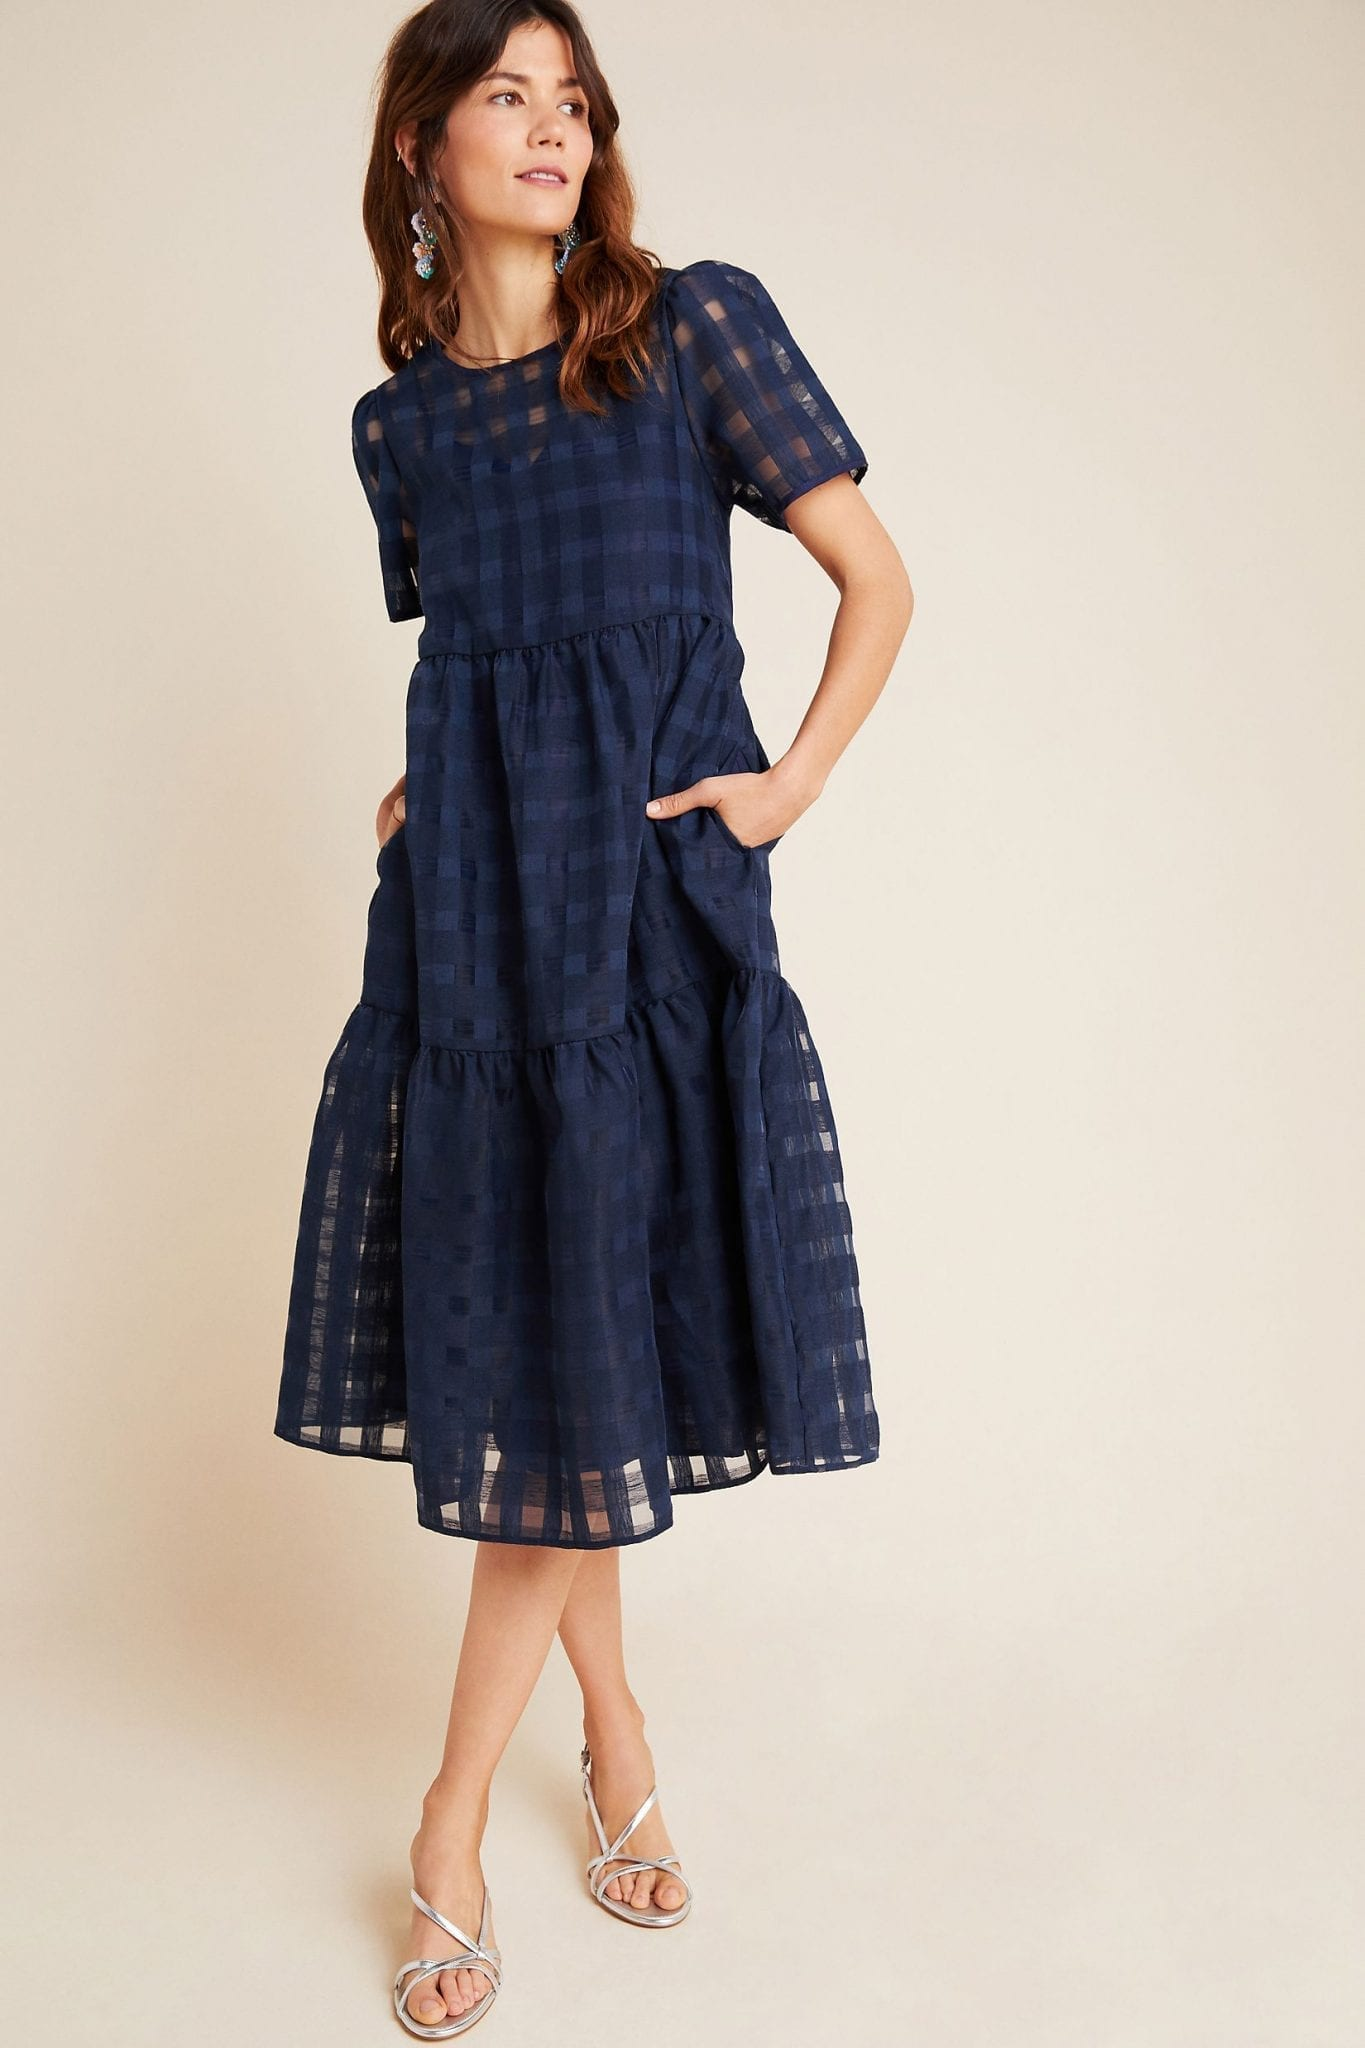 ERI + ALI Austen Tiered Midi Dress